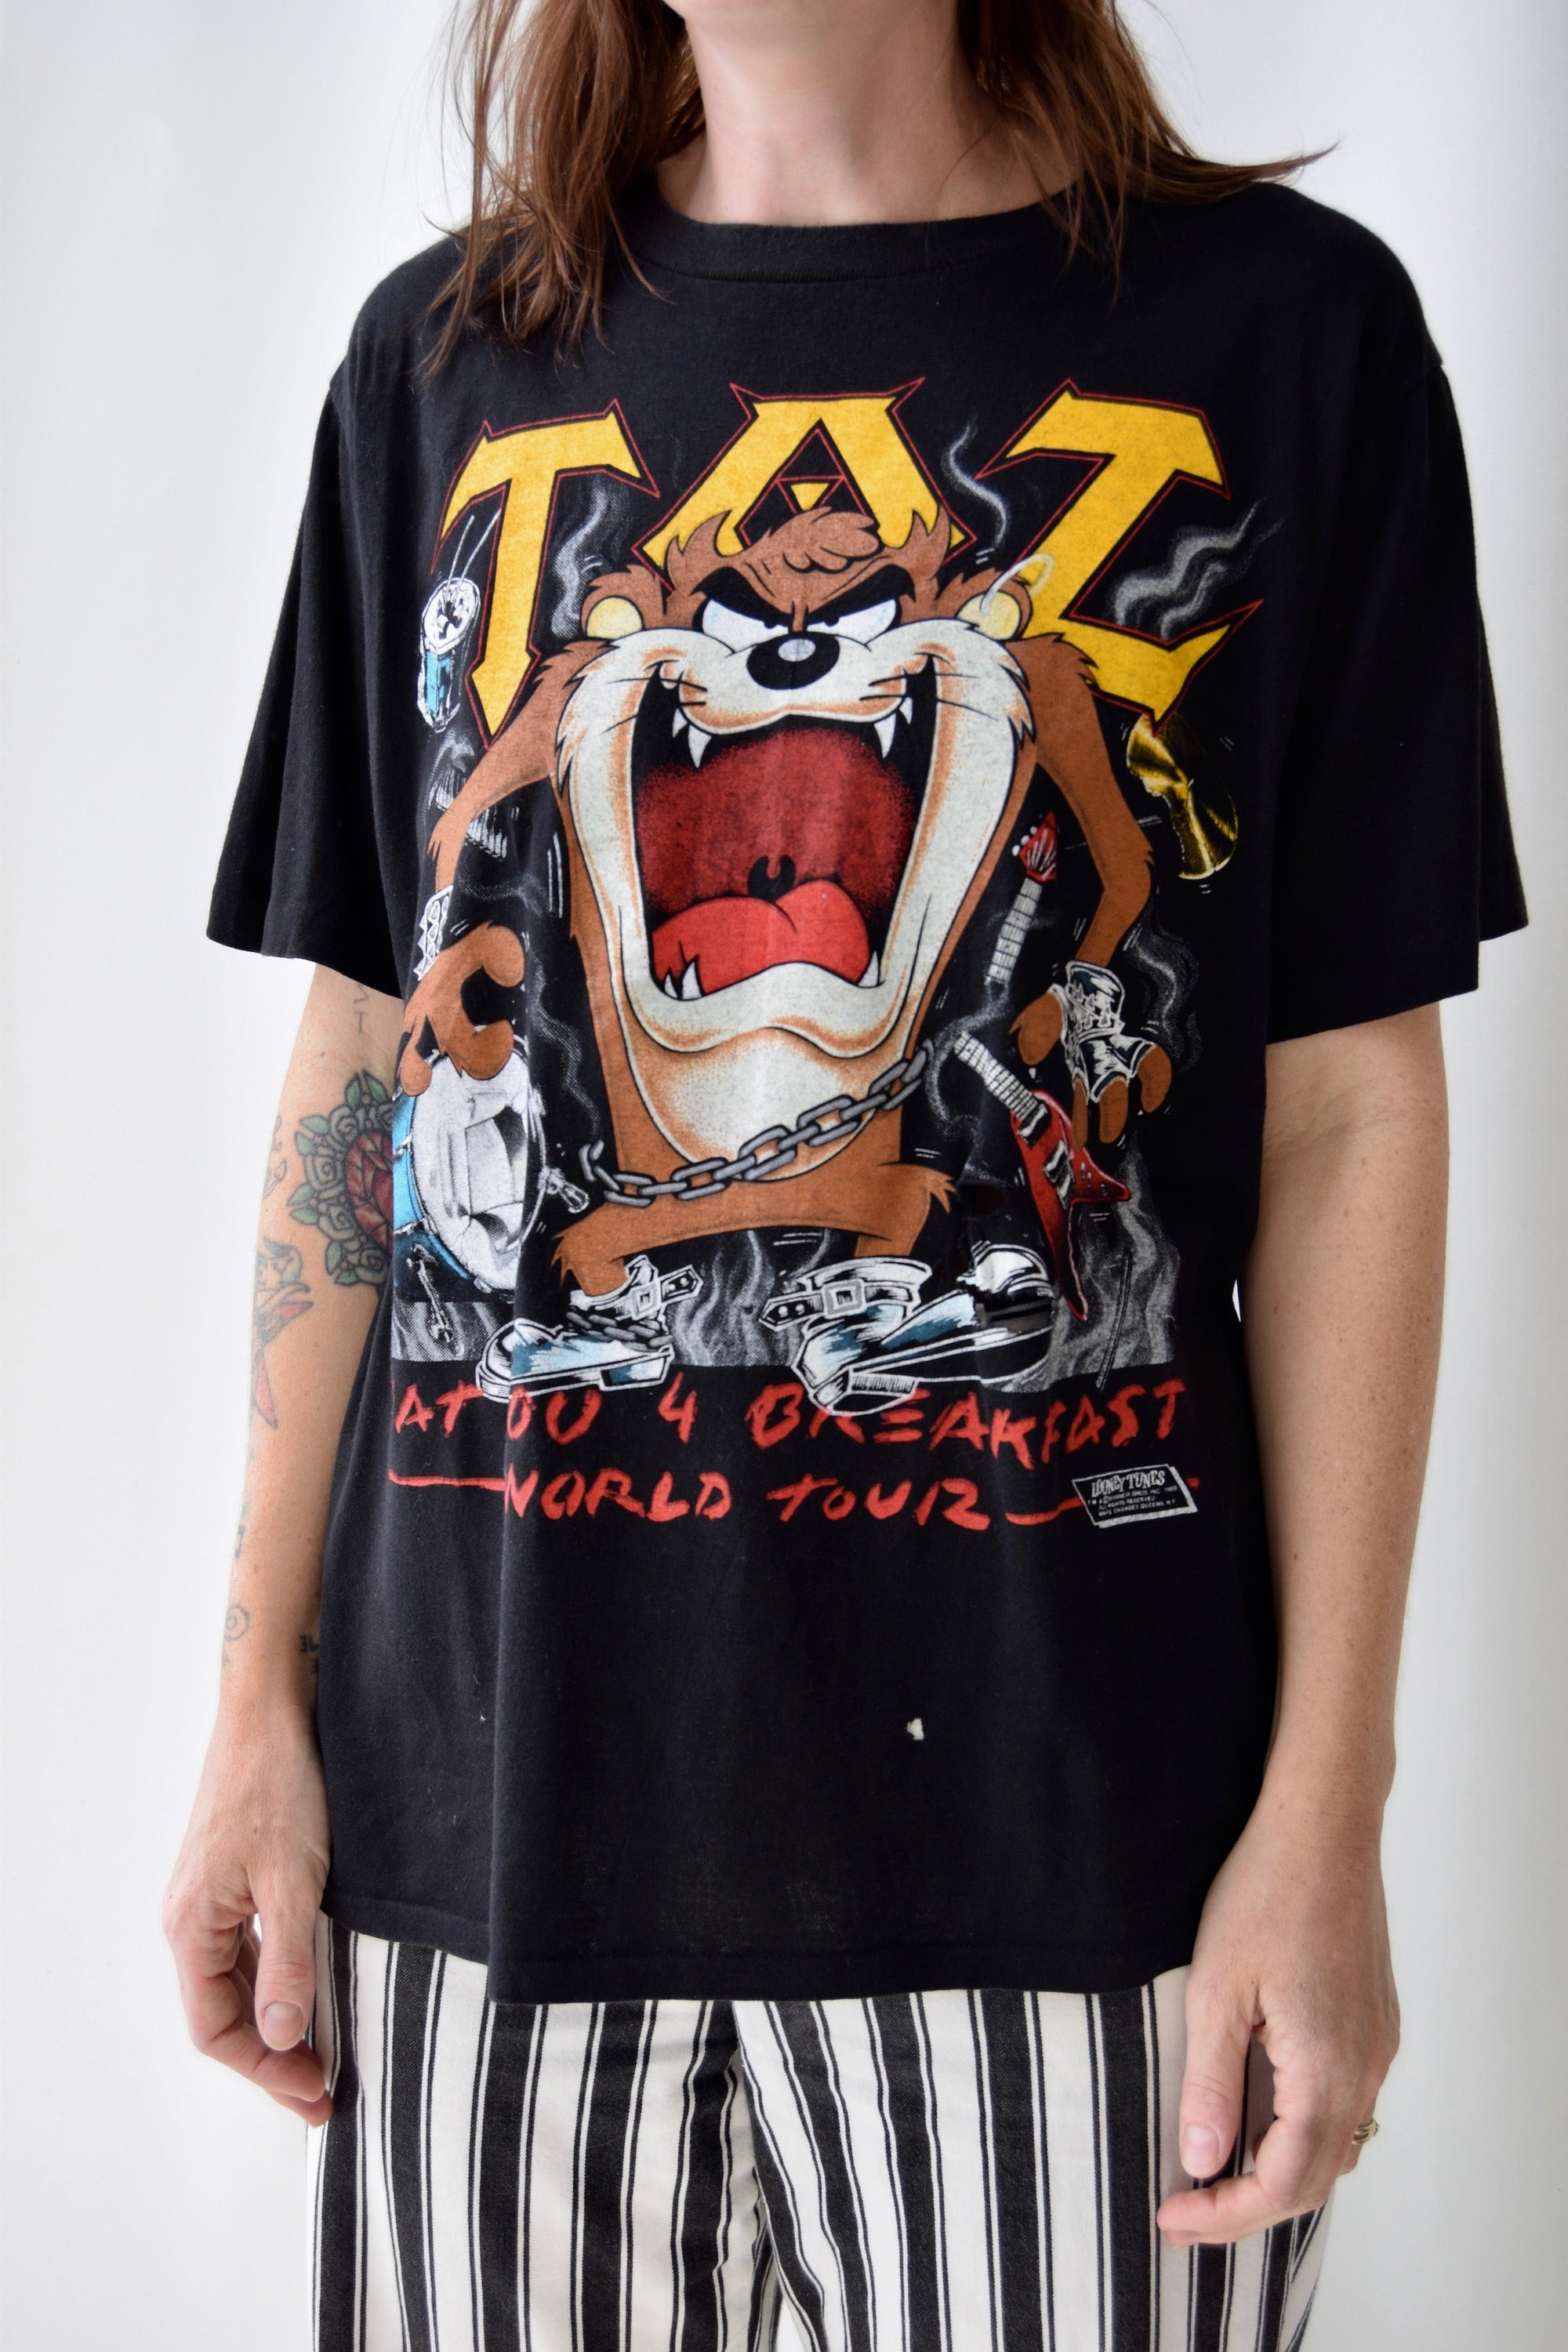 1989 Taz World Tour Tee